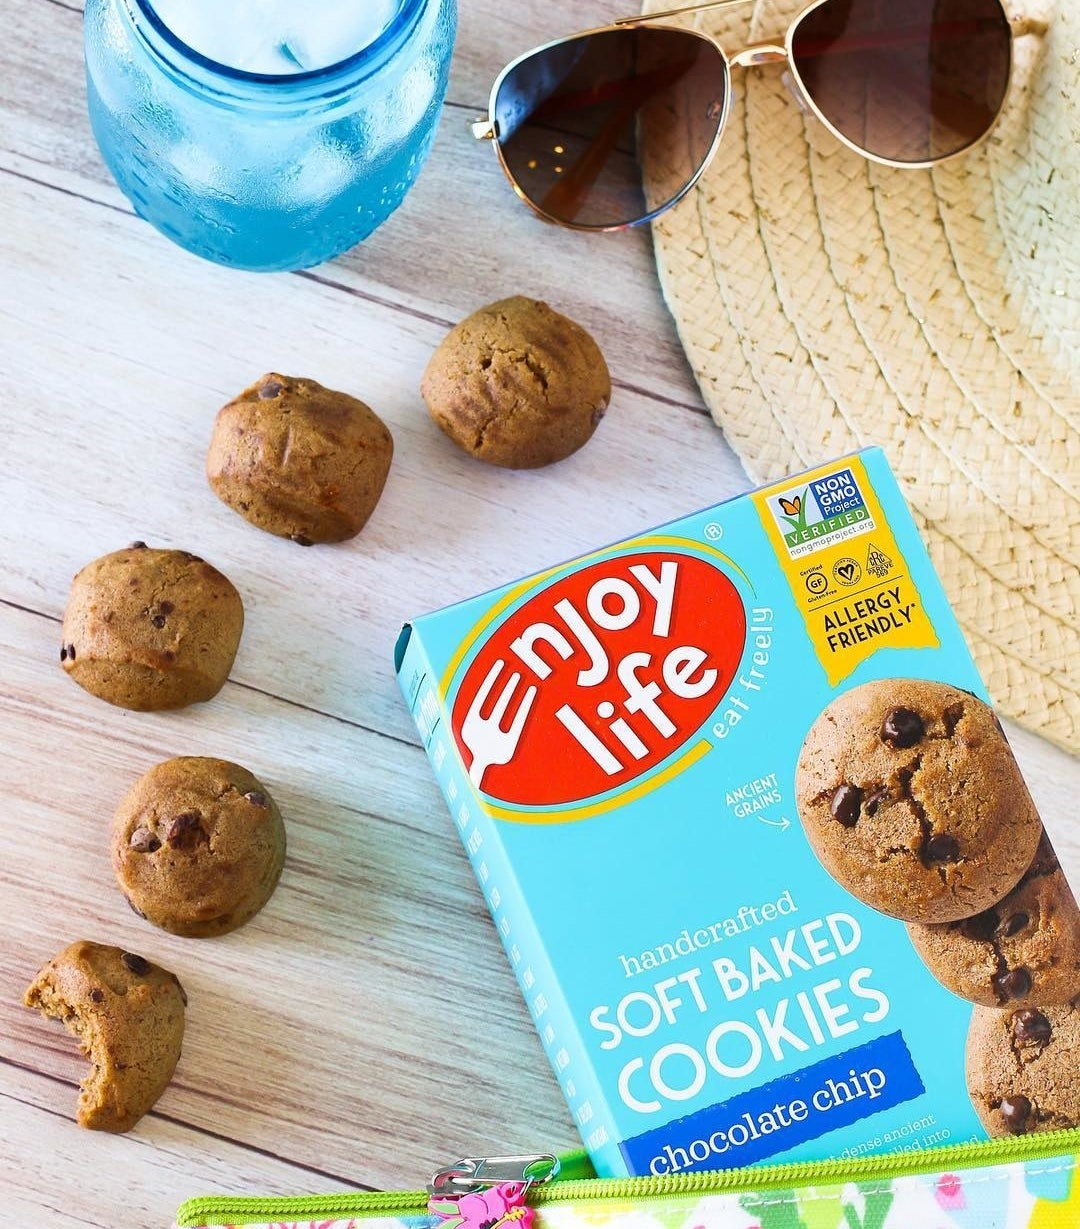 """Comes with six boxes, and 12 cookies per box. These are also verified non-GMO, allergy-friendly, certified gluten-free, kosher, and halal. They're free of gluten, wheat, peanuts, dairy, tree nuts, soy casein, sulfites, egg, lipin, sesame, fish, mustard, crustaceans, and shellfish. Promising review: """"I had serious doubts about such a cookie, but these suckers are SOFT and DELICIOUS! In fact, I prefer these to normal unhealthy cookies. These fit my vegan diet and appease my desire for sweets! These are flippin' amazing!"""" —jordan hooverPrice: $21.90"""